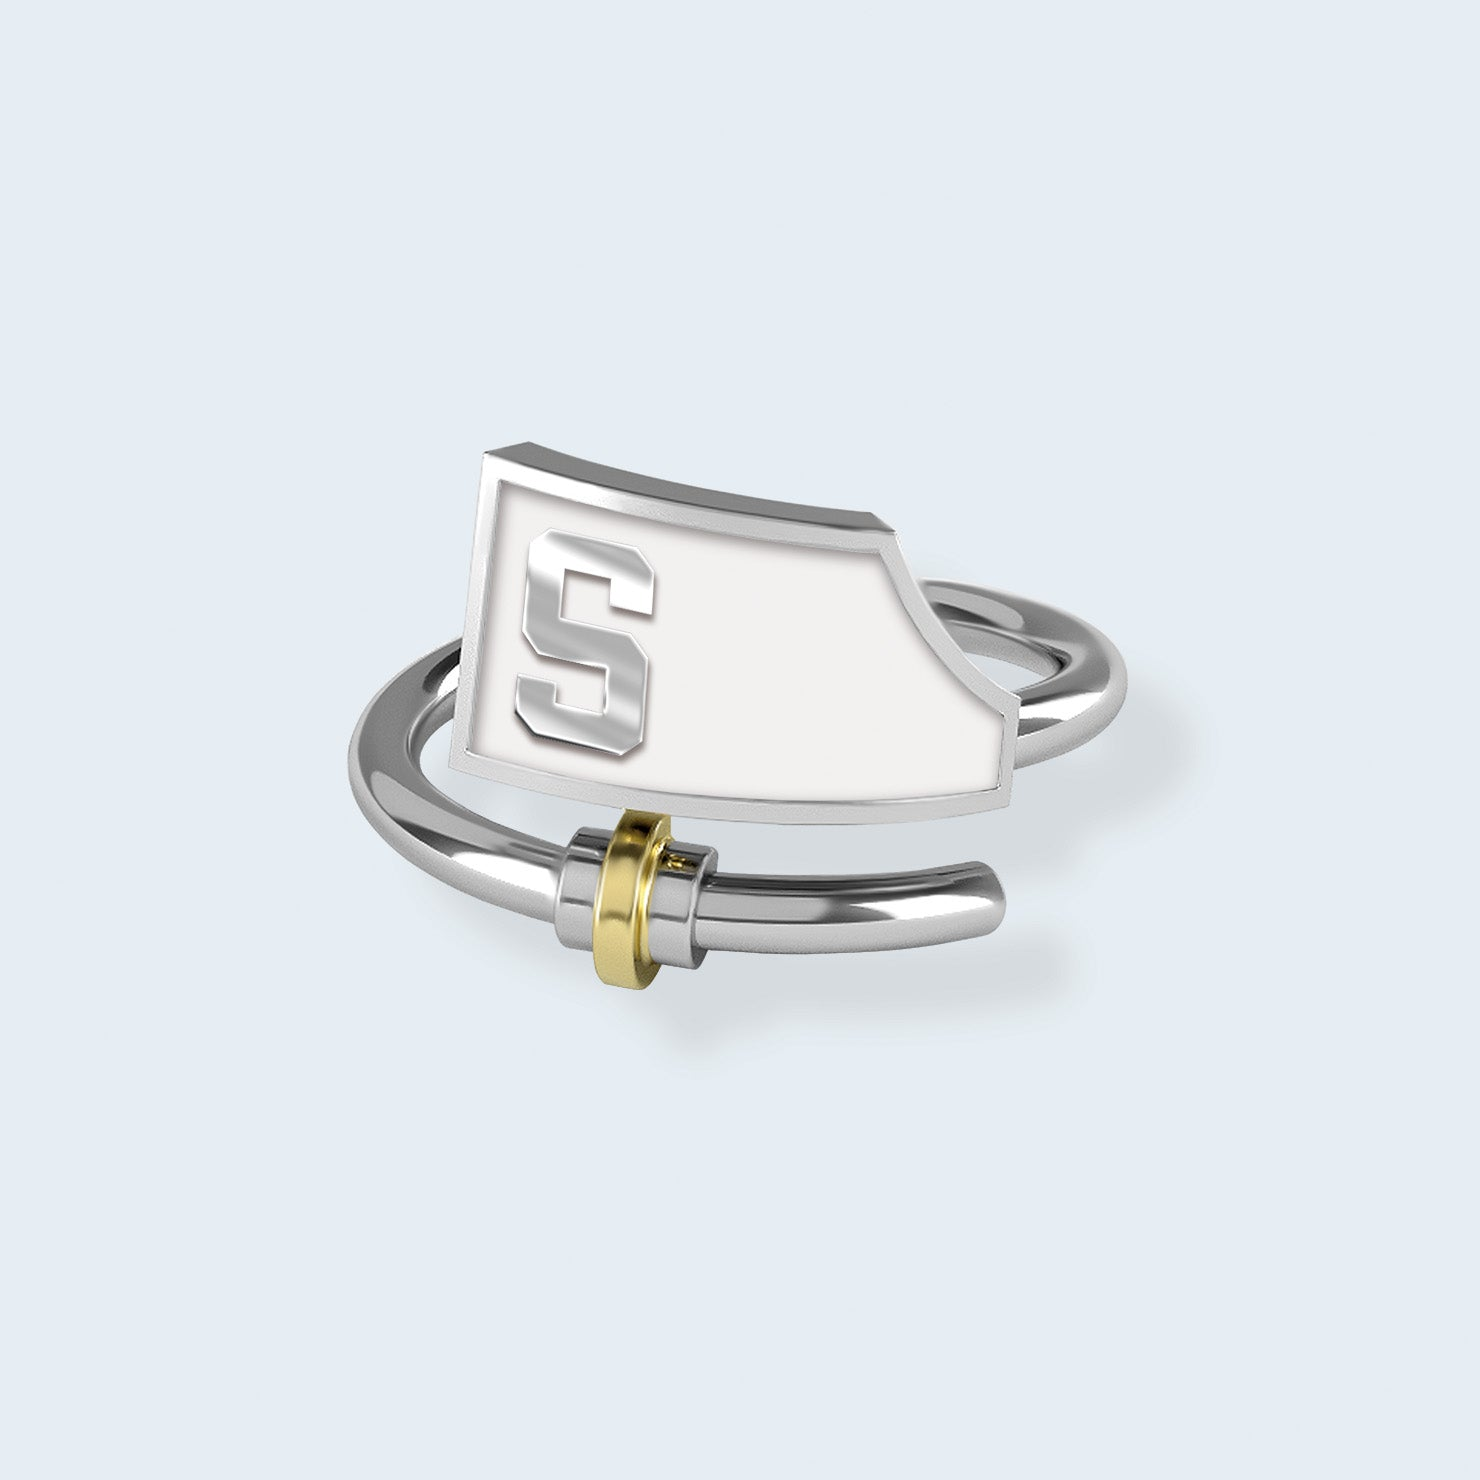 Sarasota Crew Ring - Strokeside Designs Rowing jewelry- Rowing Gifts Ideas- Rowing Coach Gifts